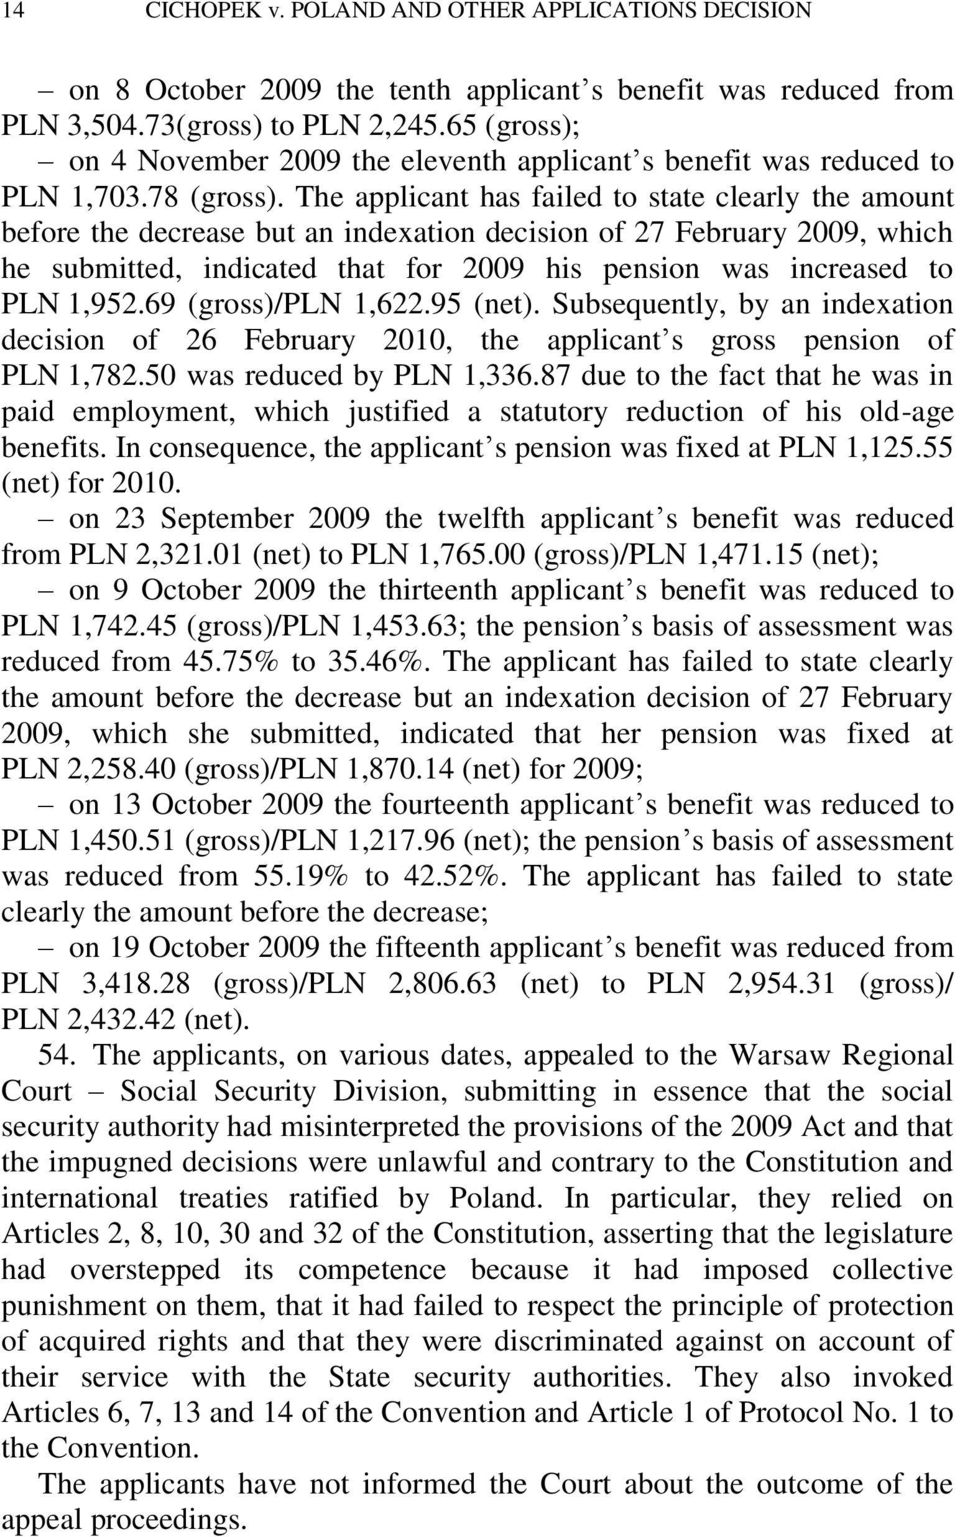 The applicant has failed to state clearly the amount before the decrease but an indexation decision of 27 February 2009, which he submitted, indicated that for 2009 his pension was increased to PLN